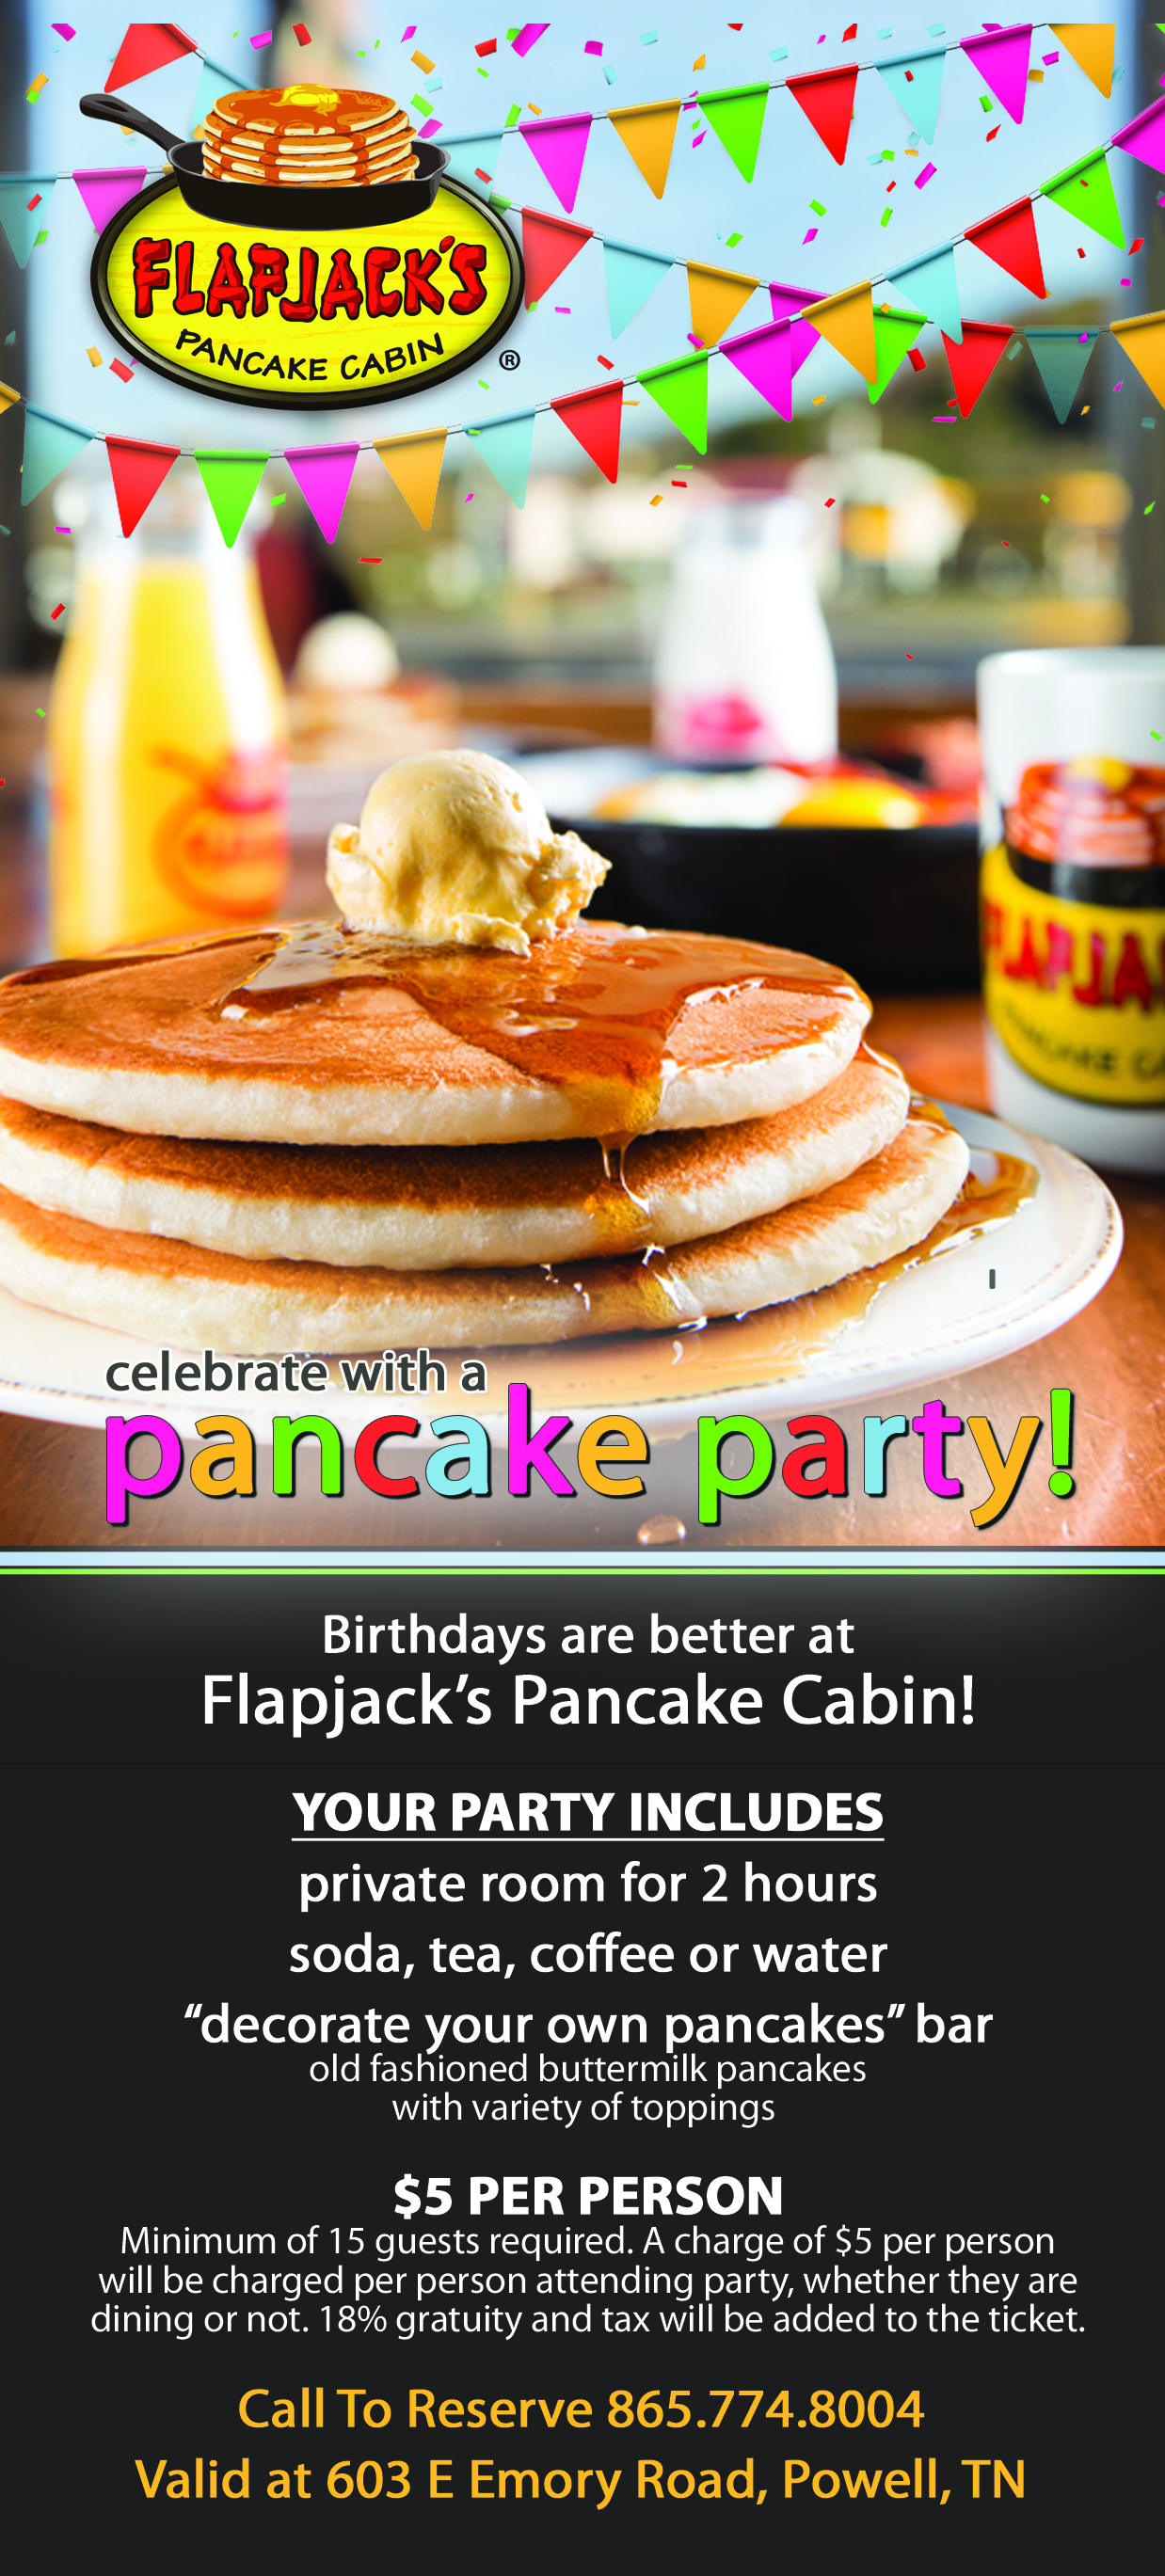 Birthday Parties At Flapjacks Pancake Cabin On Emory Road In The Powell Community Knoxville TN